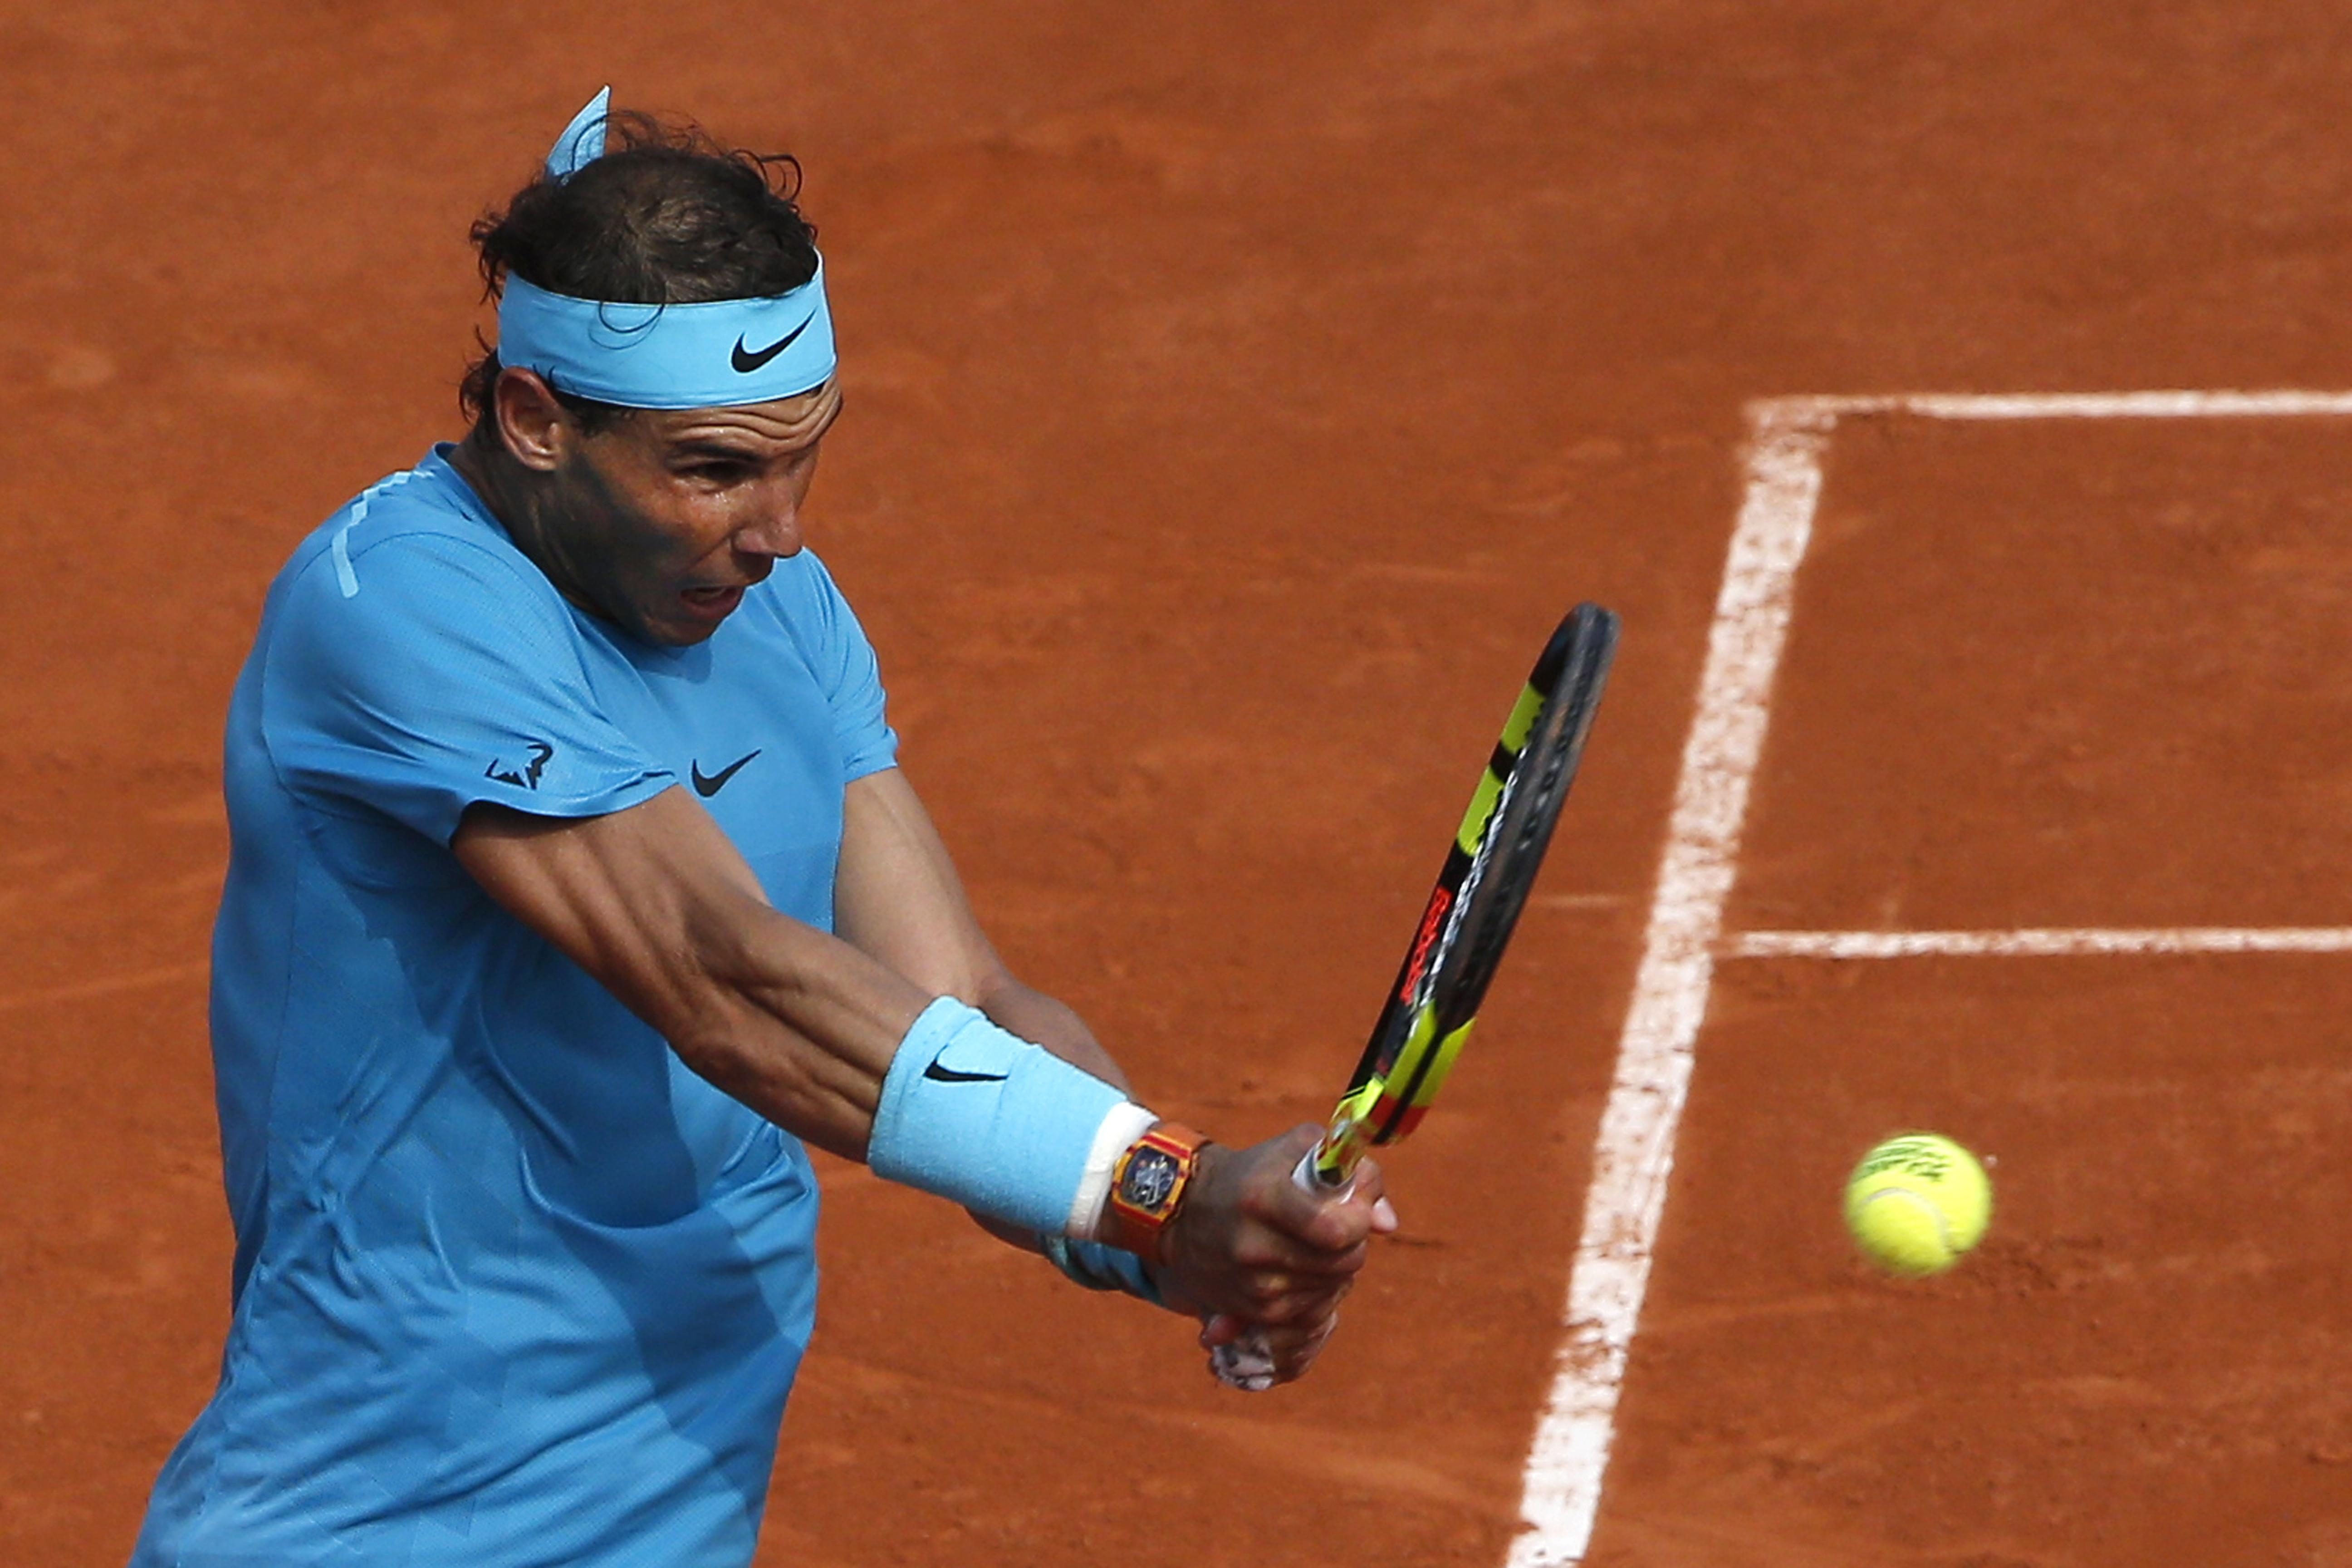 Nadal's cramp knocked him for a short time, but he came back to his best to ensure he lifted the Roland Garros trophy